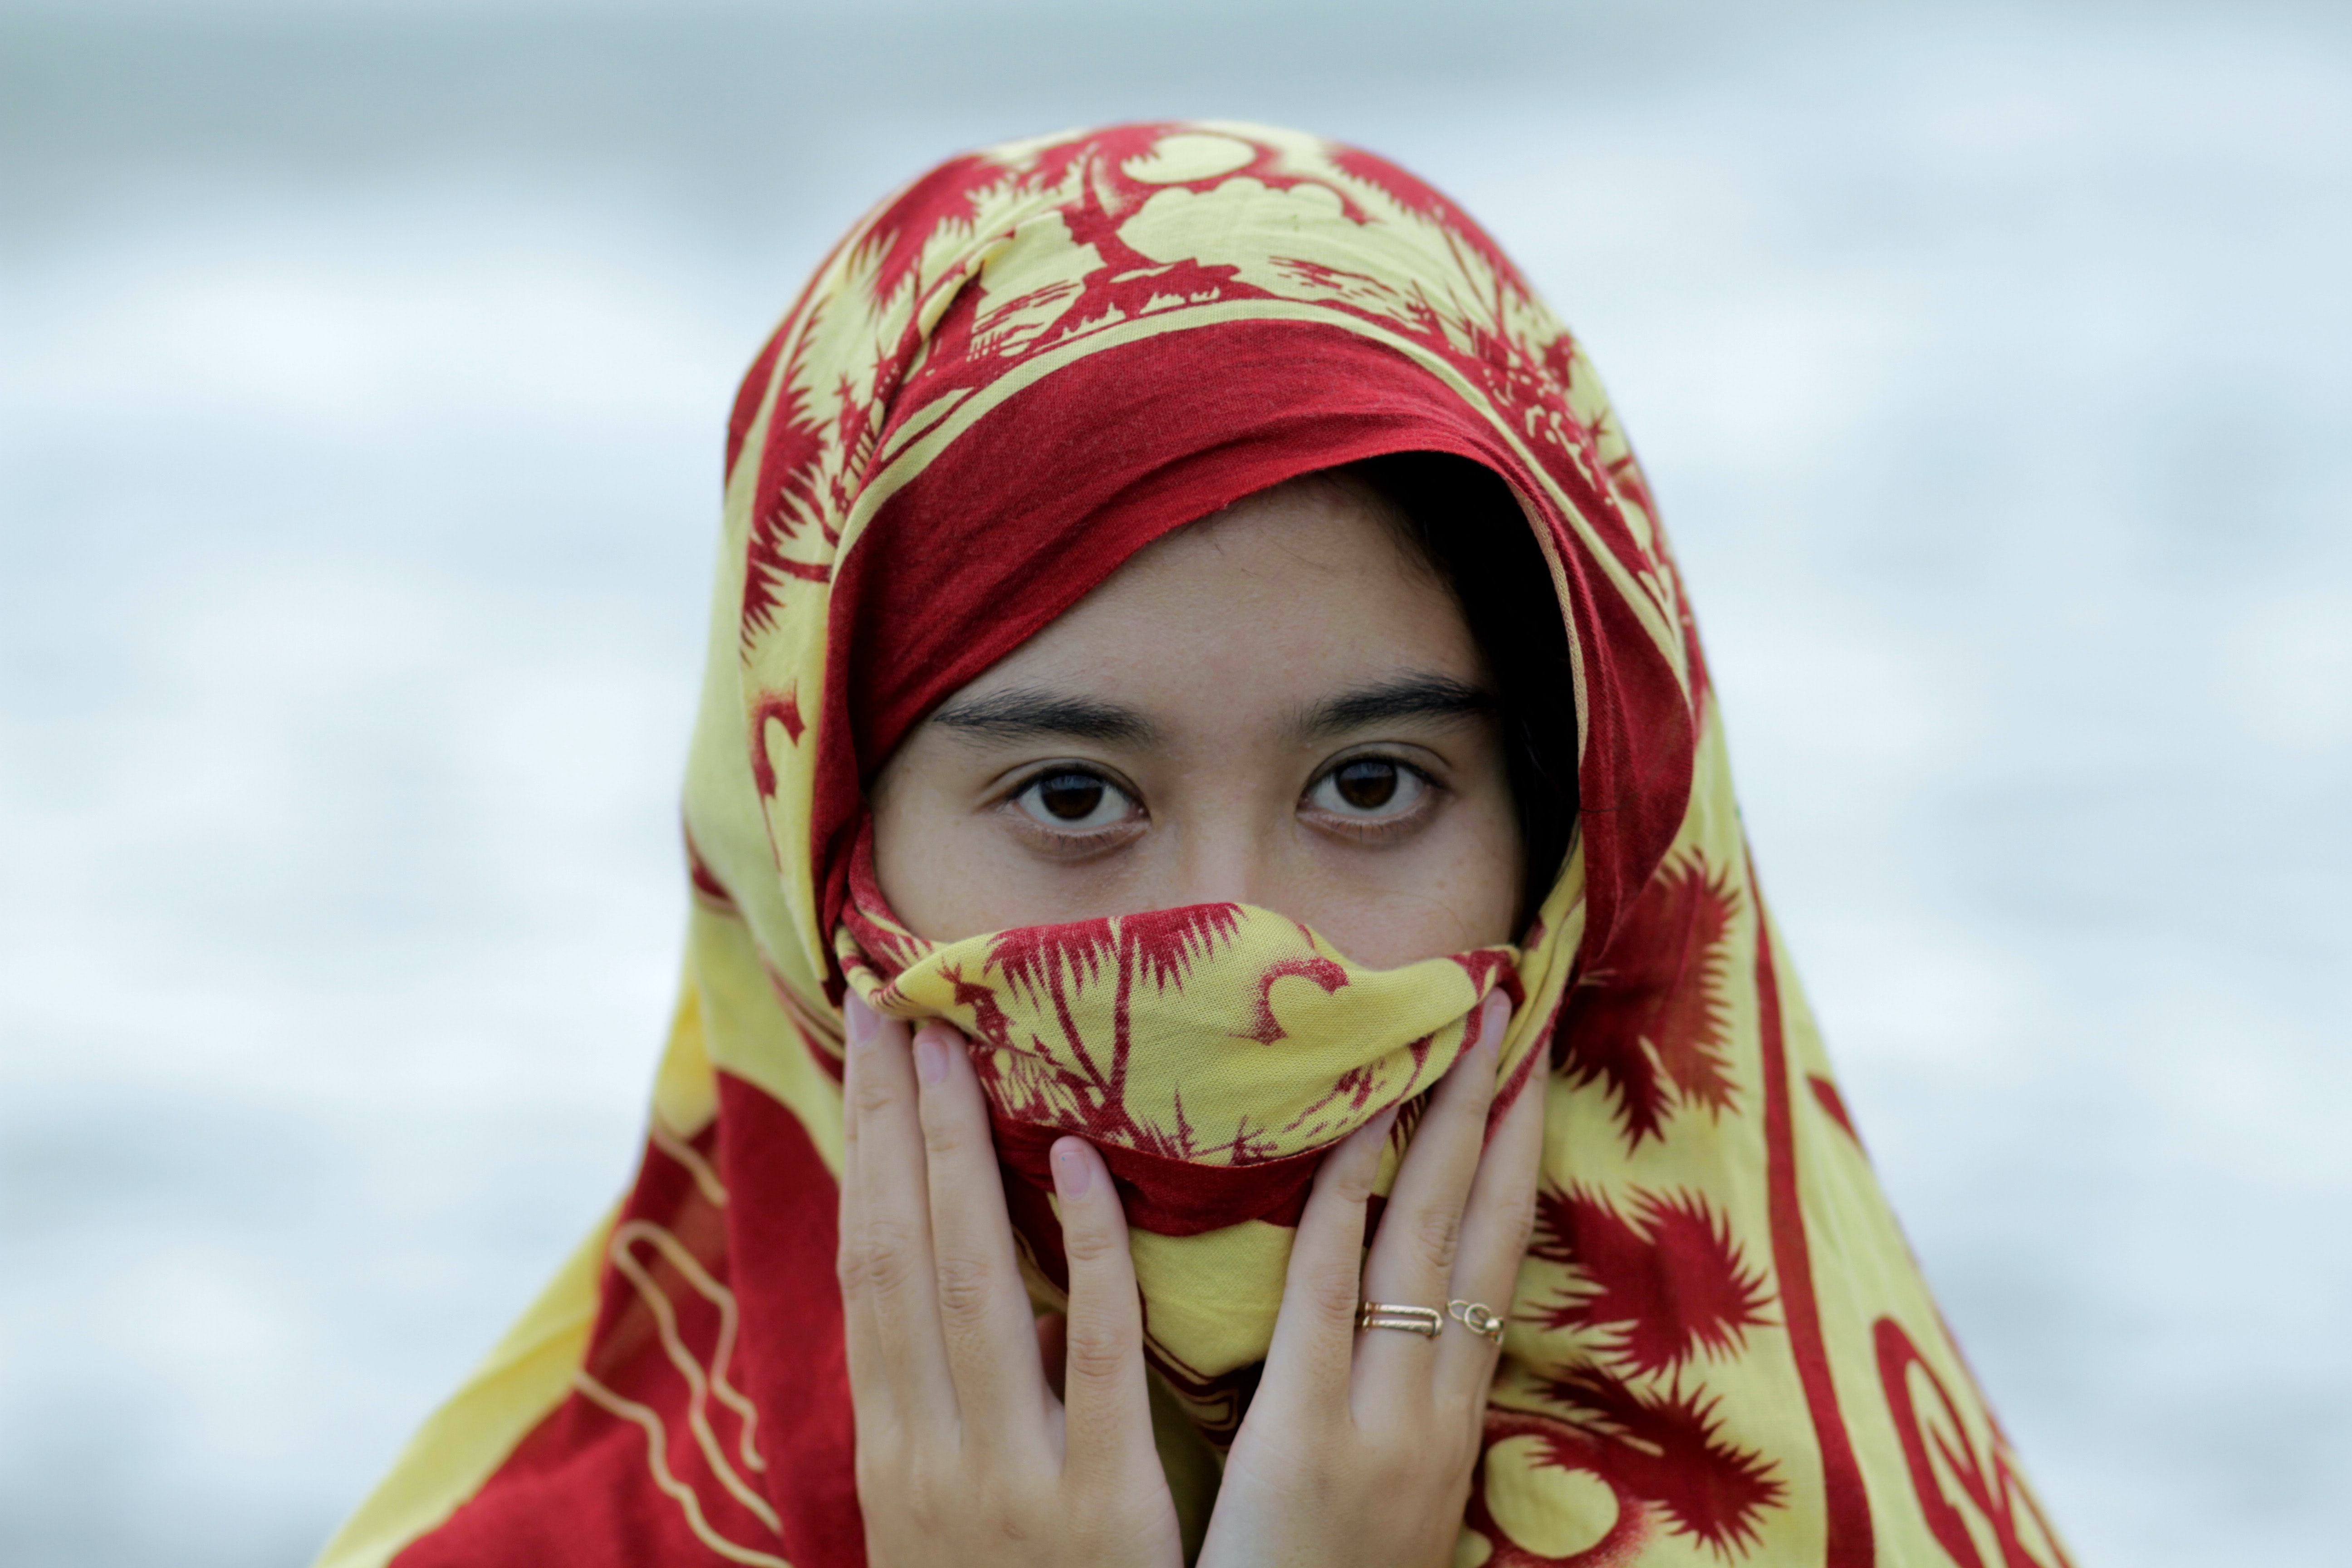 shallow focus photography of woman wearing red and yellow hijab headdress